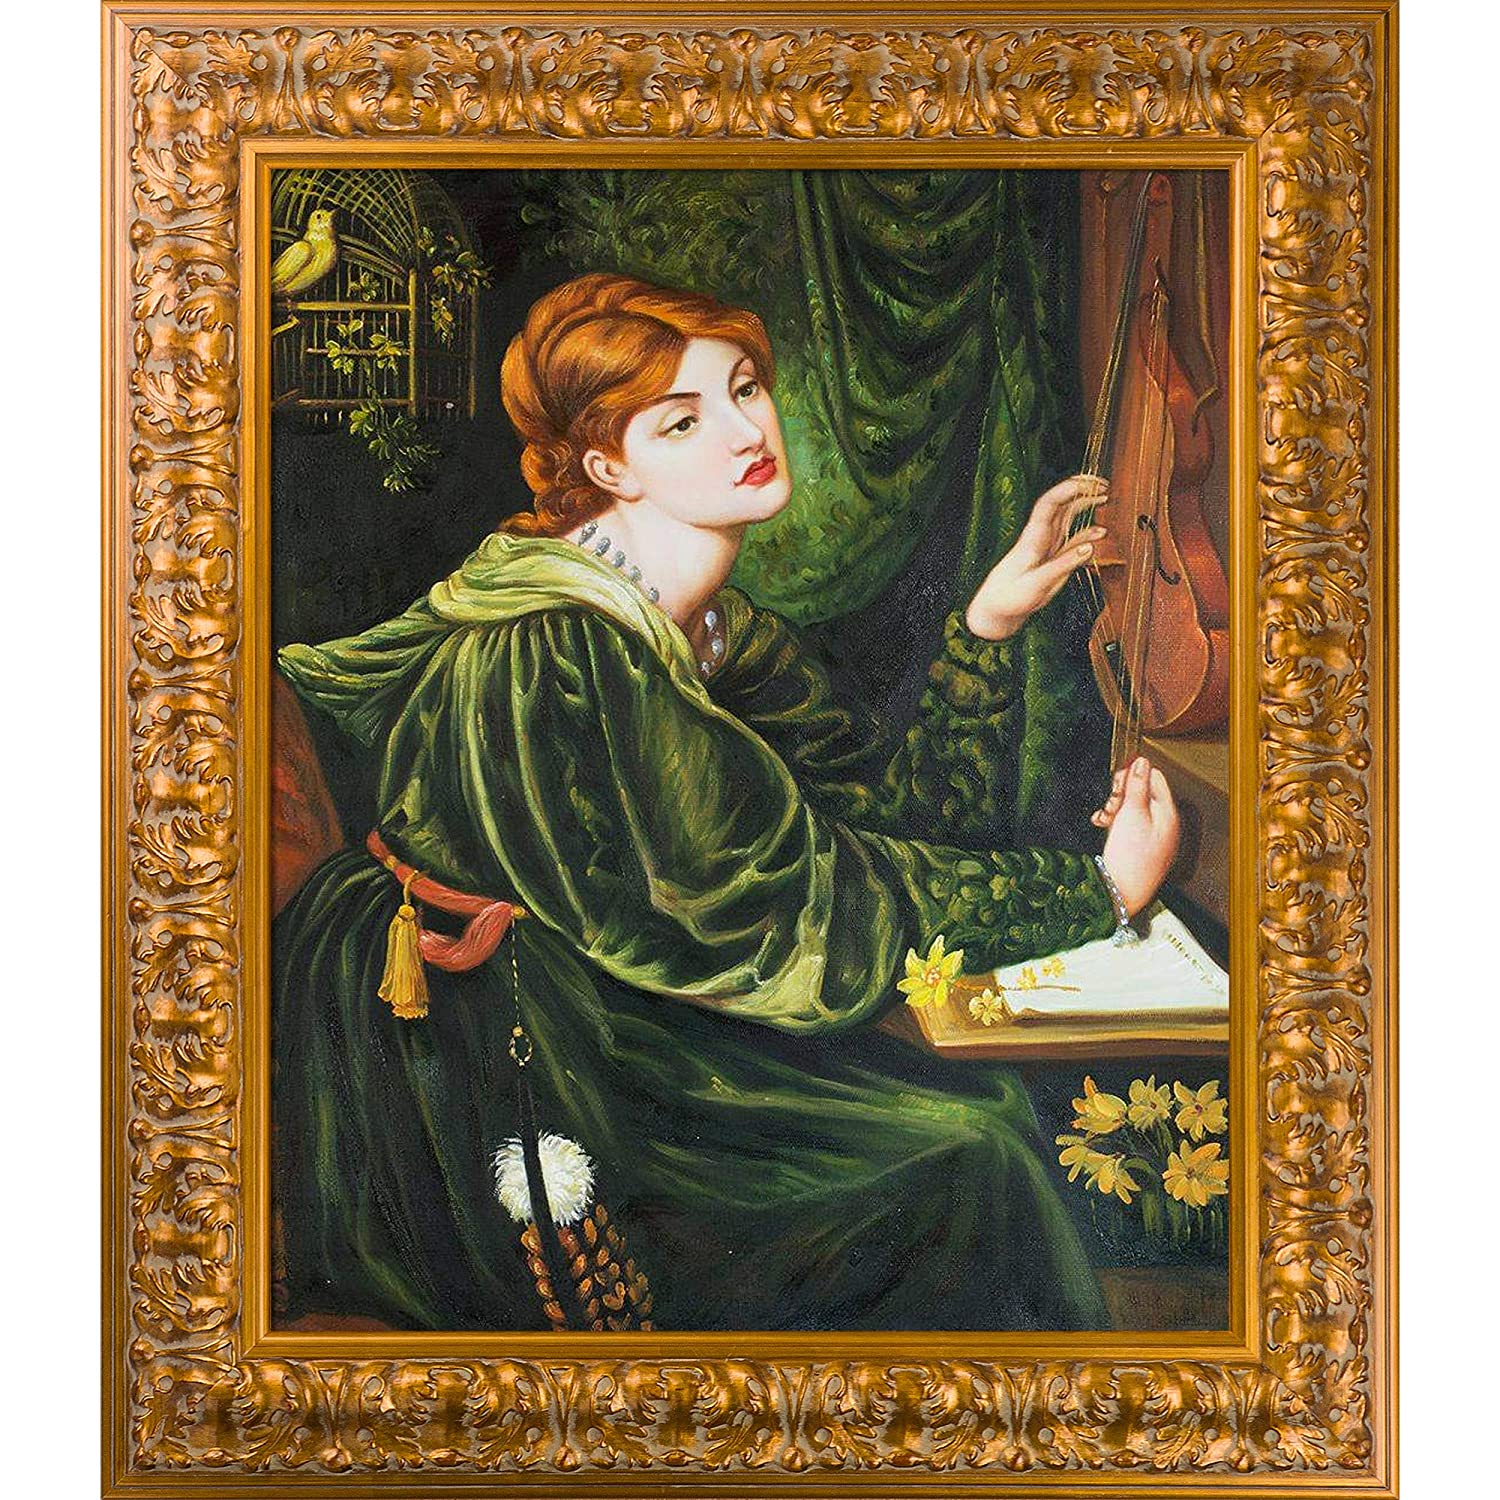 20X24 Multi overstockArt DGR7229-FR-7881620X24 Veronica Veronese with Sicilian Gold Framed Hand Painted Oil Reproduction